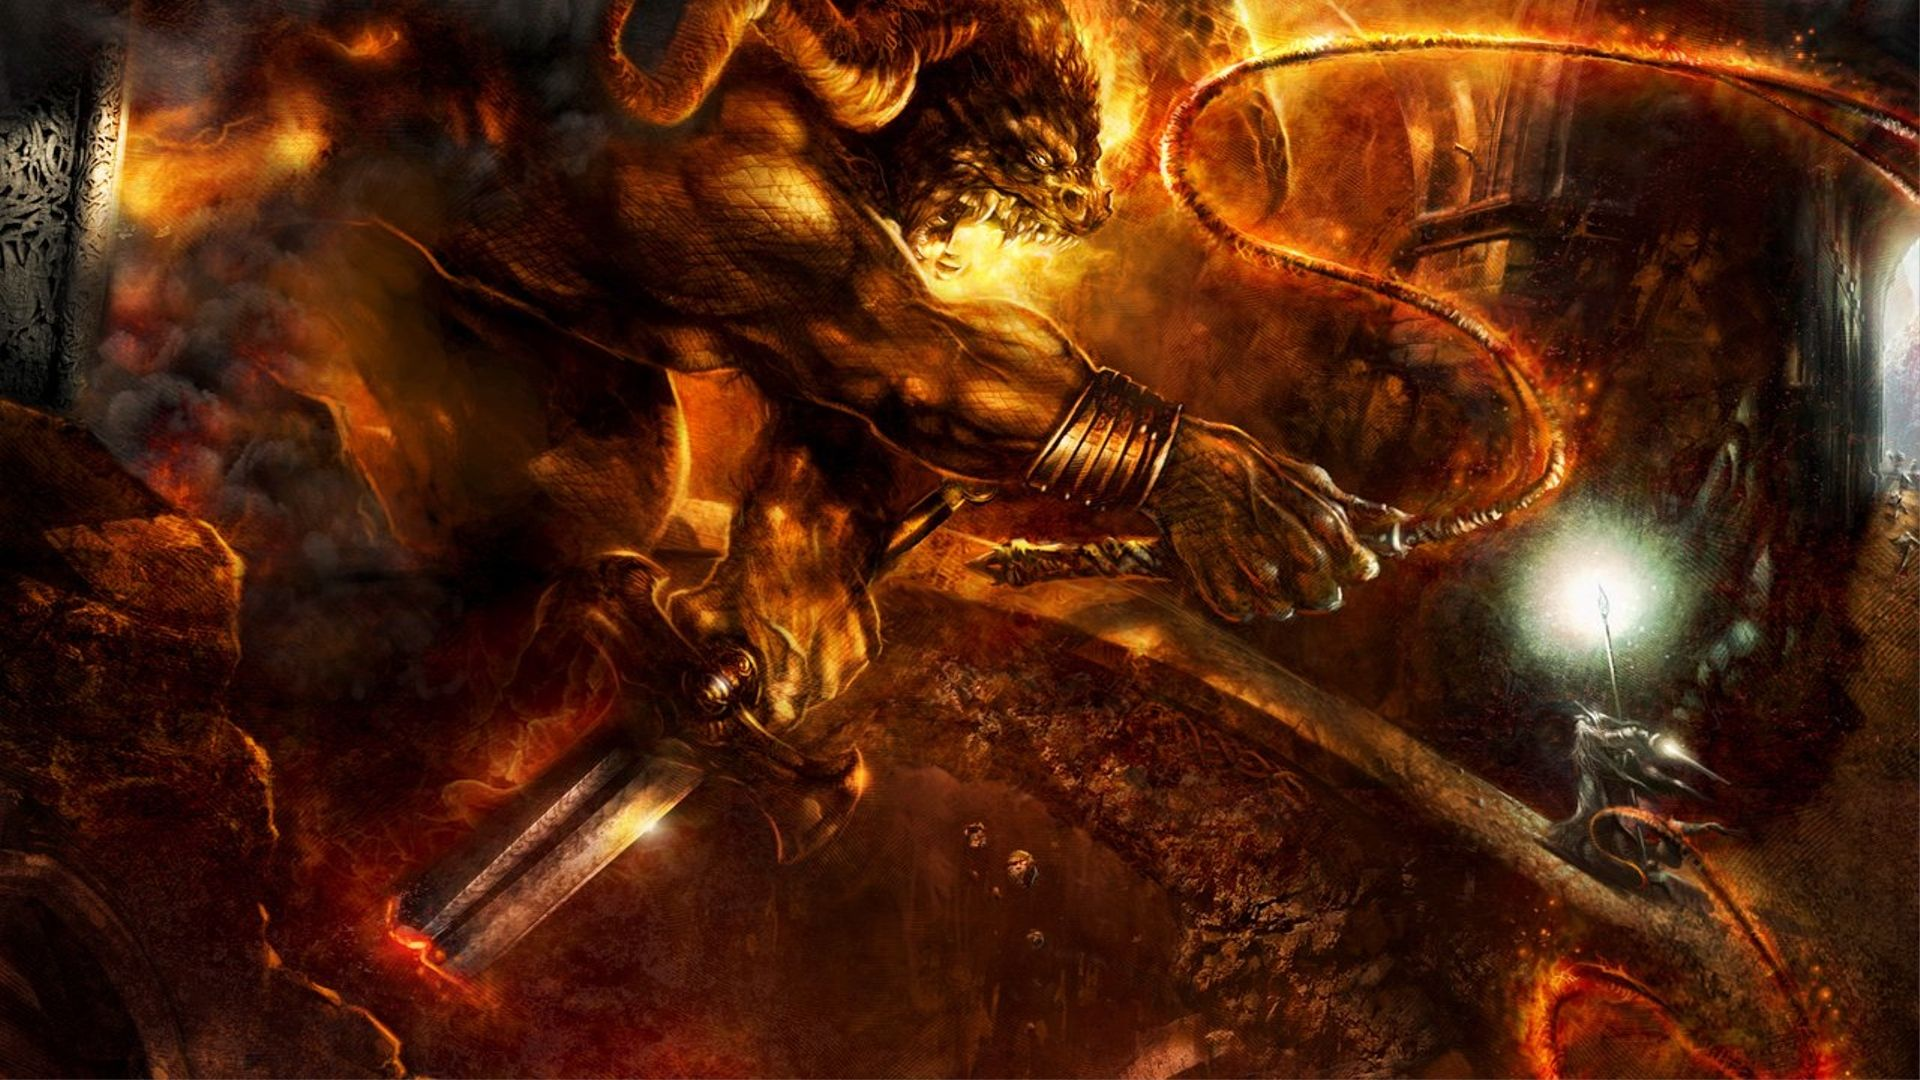 Download Demon Balrog Live Wallpaper for Android - Appszoom | All Wallpapers | Balrog, Lord of ...